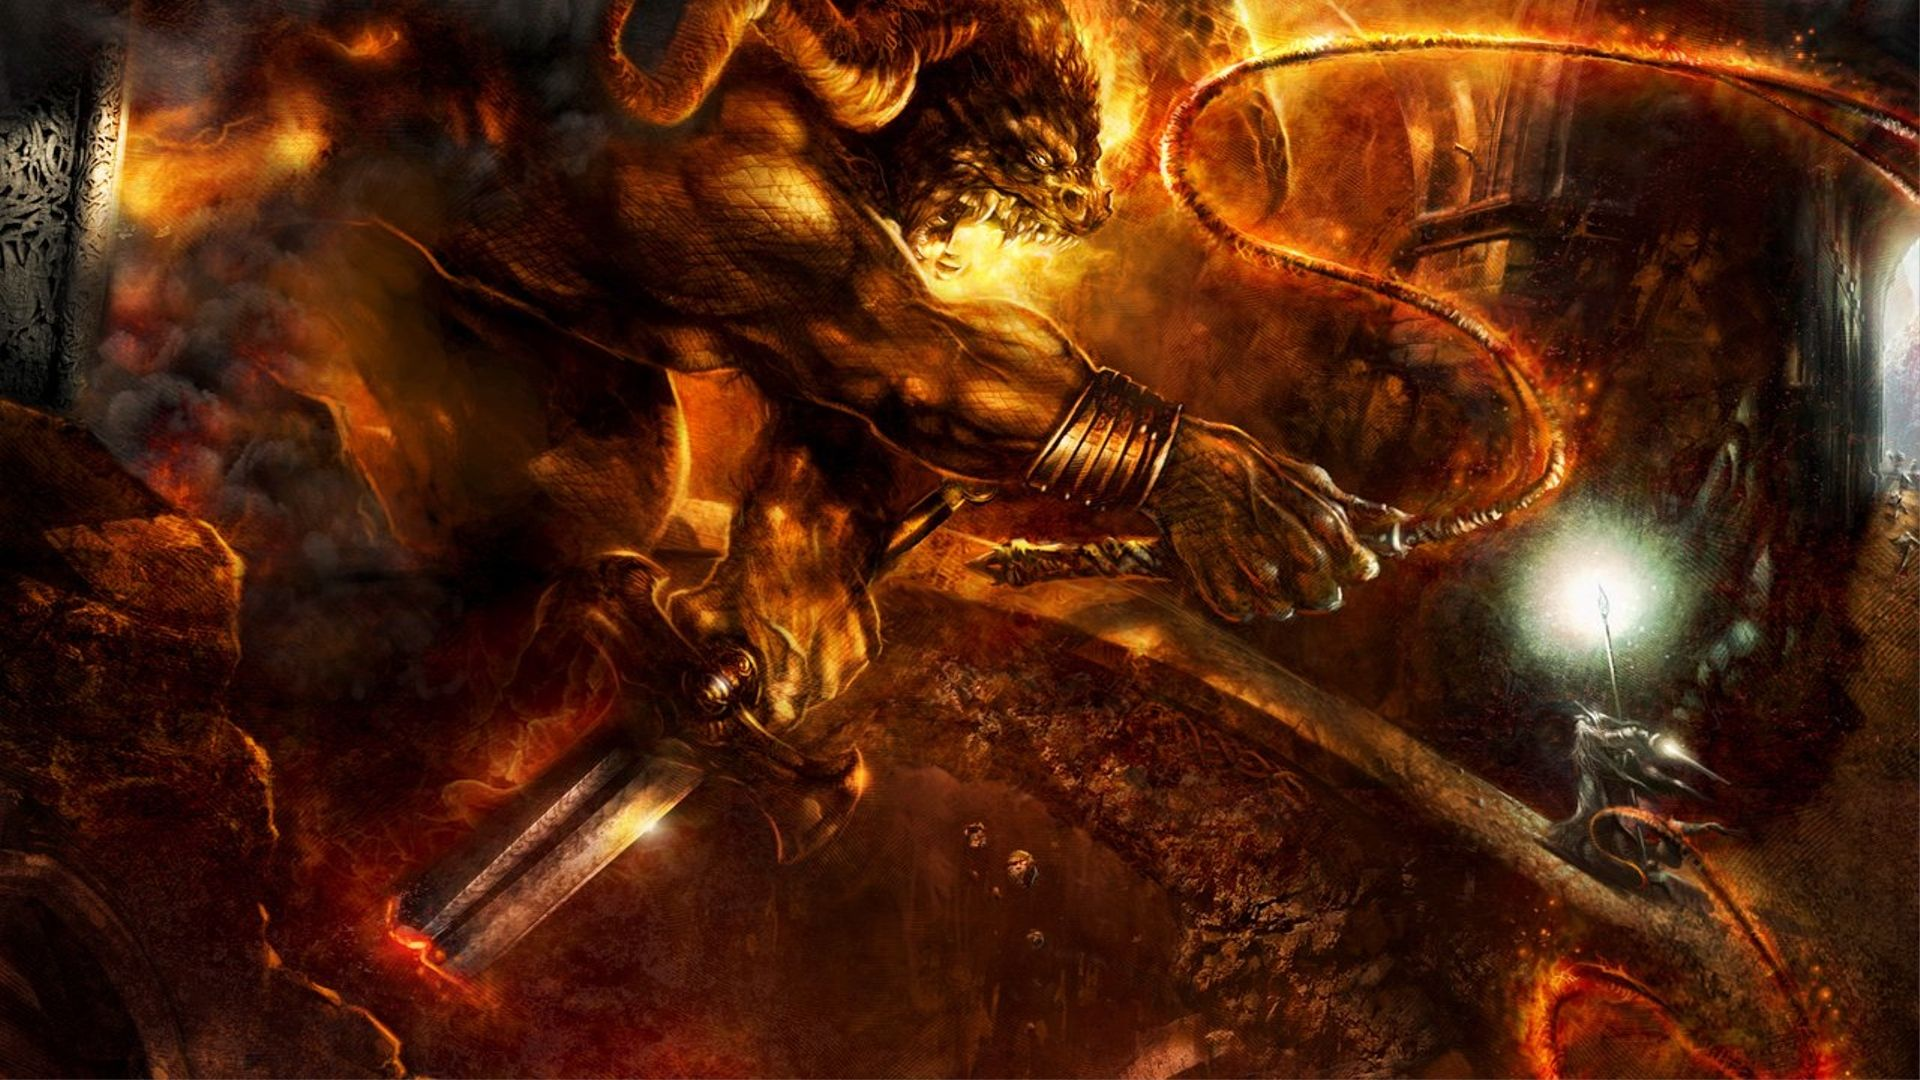 Download Demon Balrog Live Wallpaper for Android - Appszoom | All Wallpapers | Balrog, Lord of ...